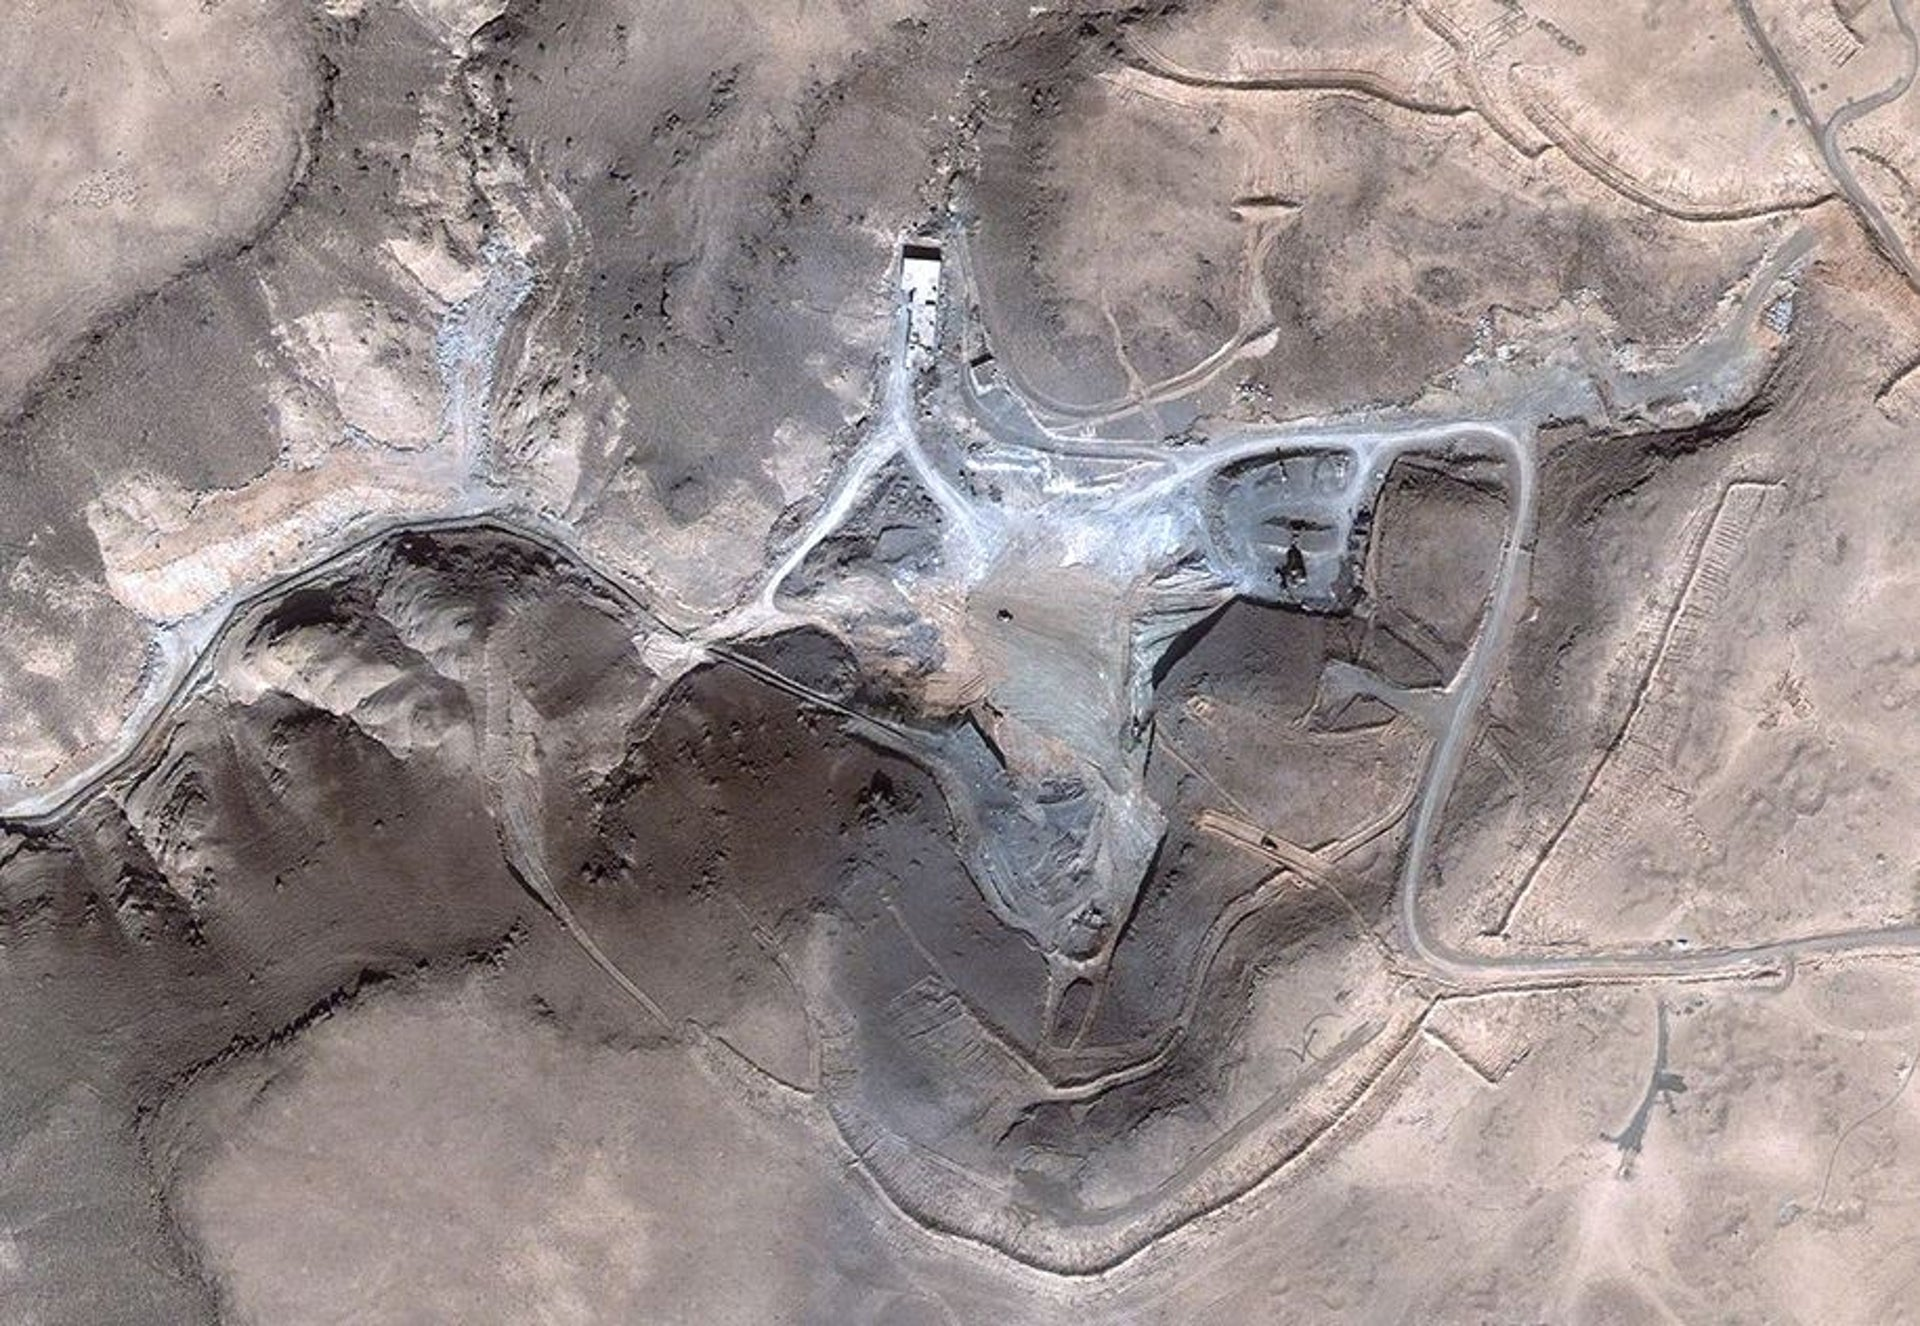 The Syrian reactor several weeks after the Israeli strike